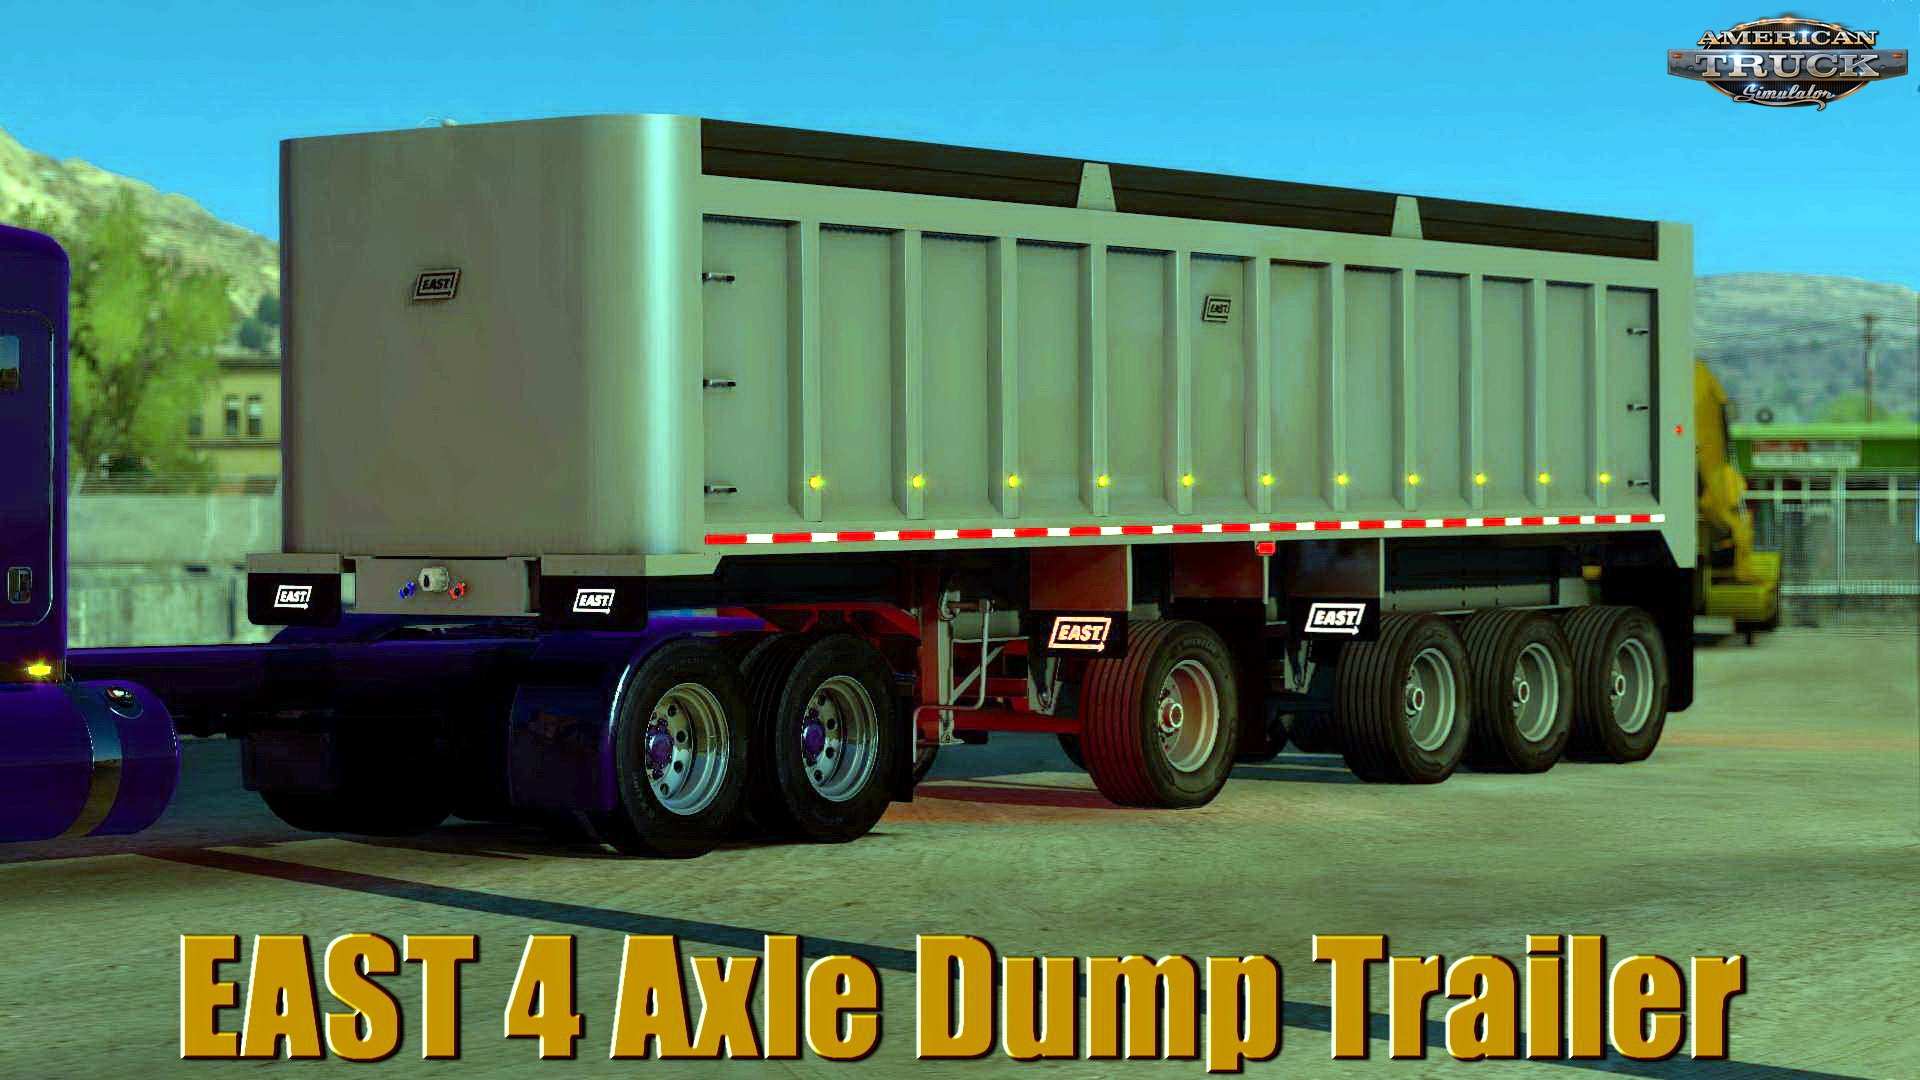 EAST 4 Axle Dump Trailer (Fixed Version) v1.0 for ATS (1.35.x)